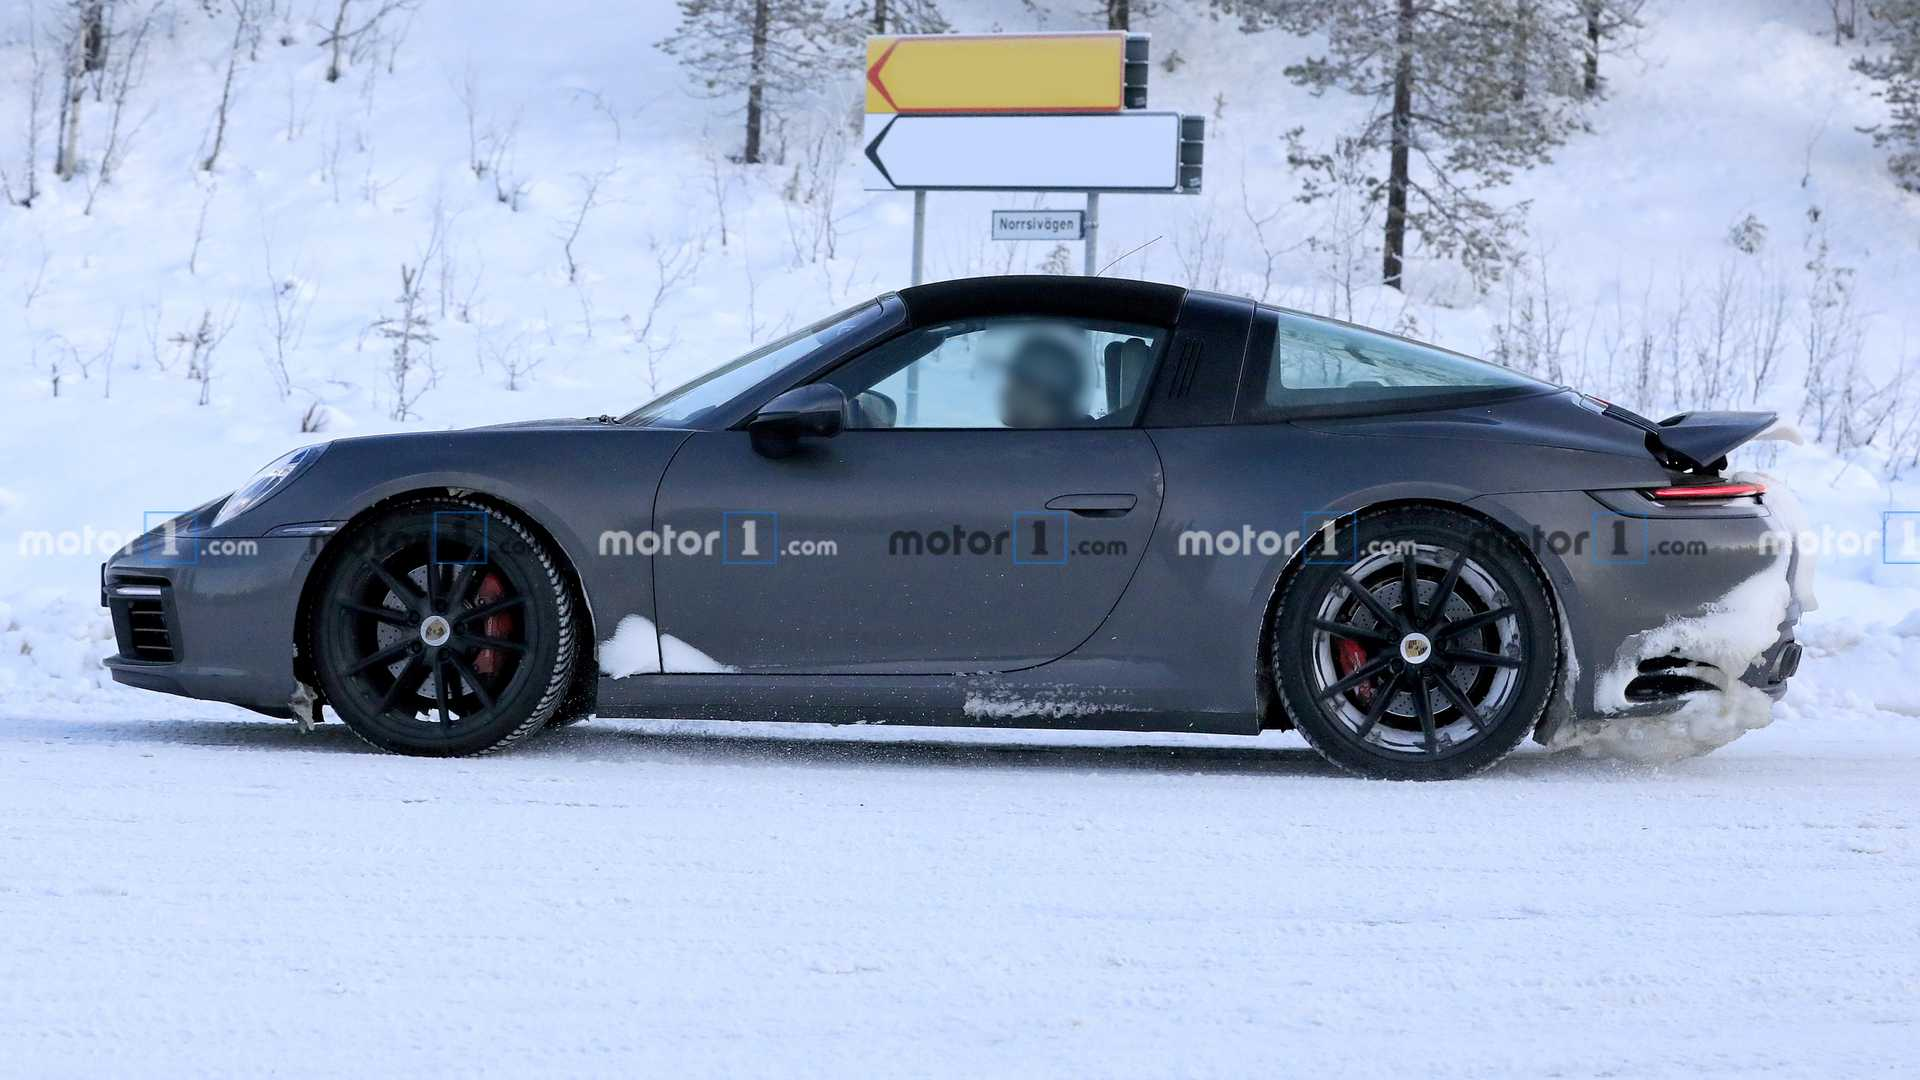 Porsche 911 Targa Spy Photos Porsche-911-targa-spy-photo